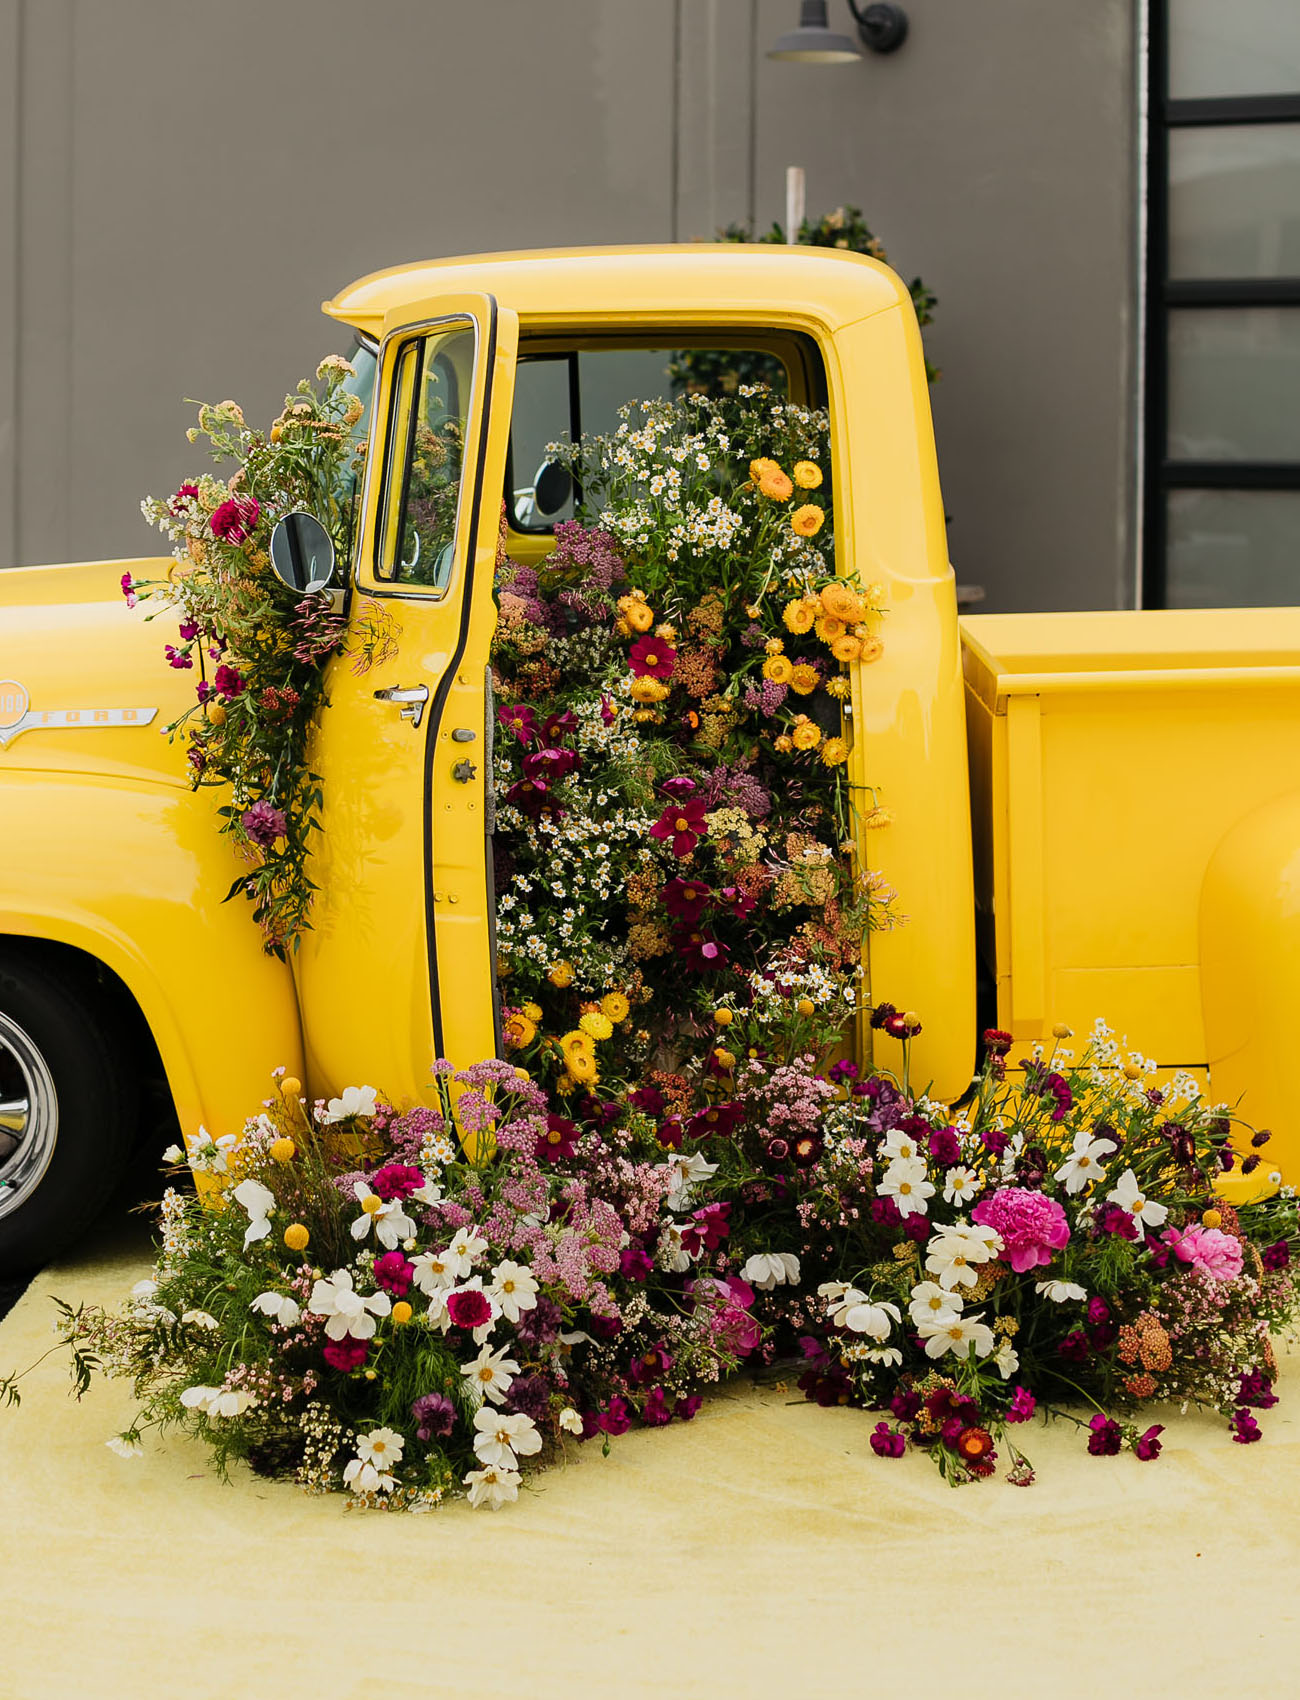 This gorgeous yellow truck was filled with bright blooms to make a statement decoration for this modern wedding shoot